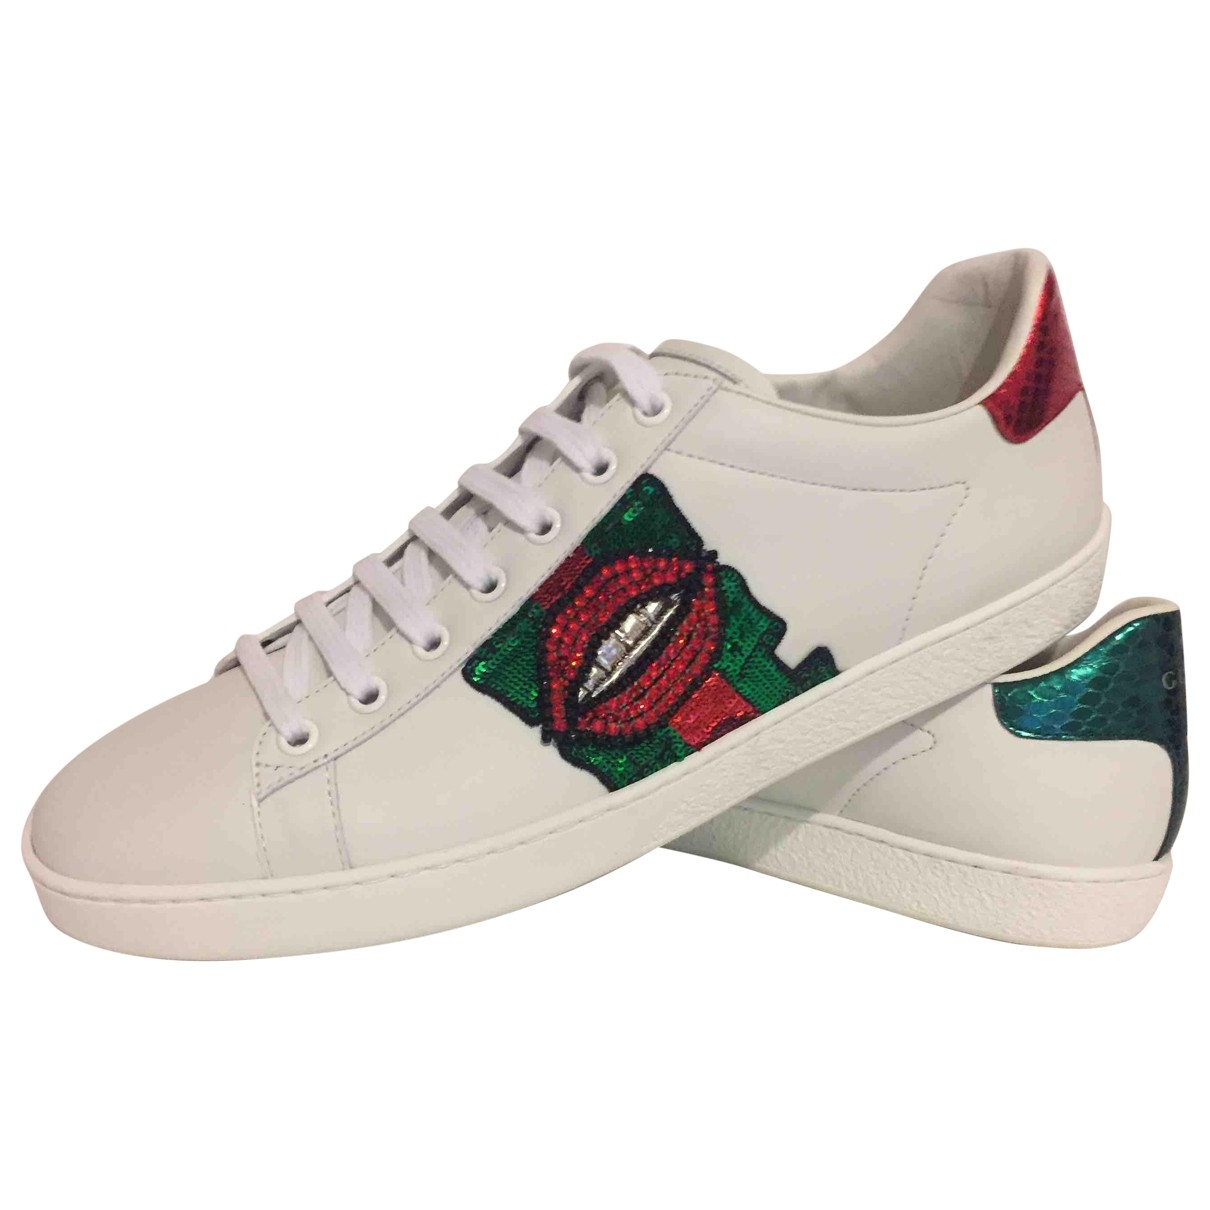 Gucci Ace White Leather Trainers for Women 42 EU